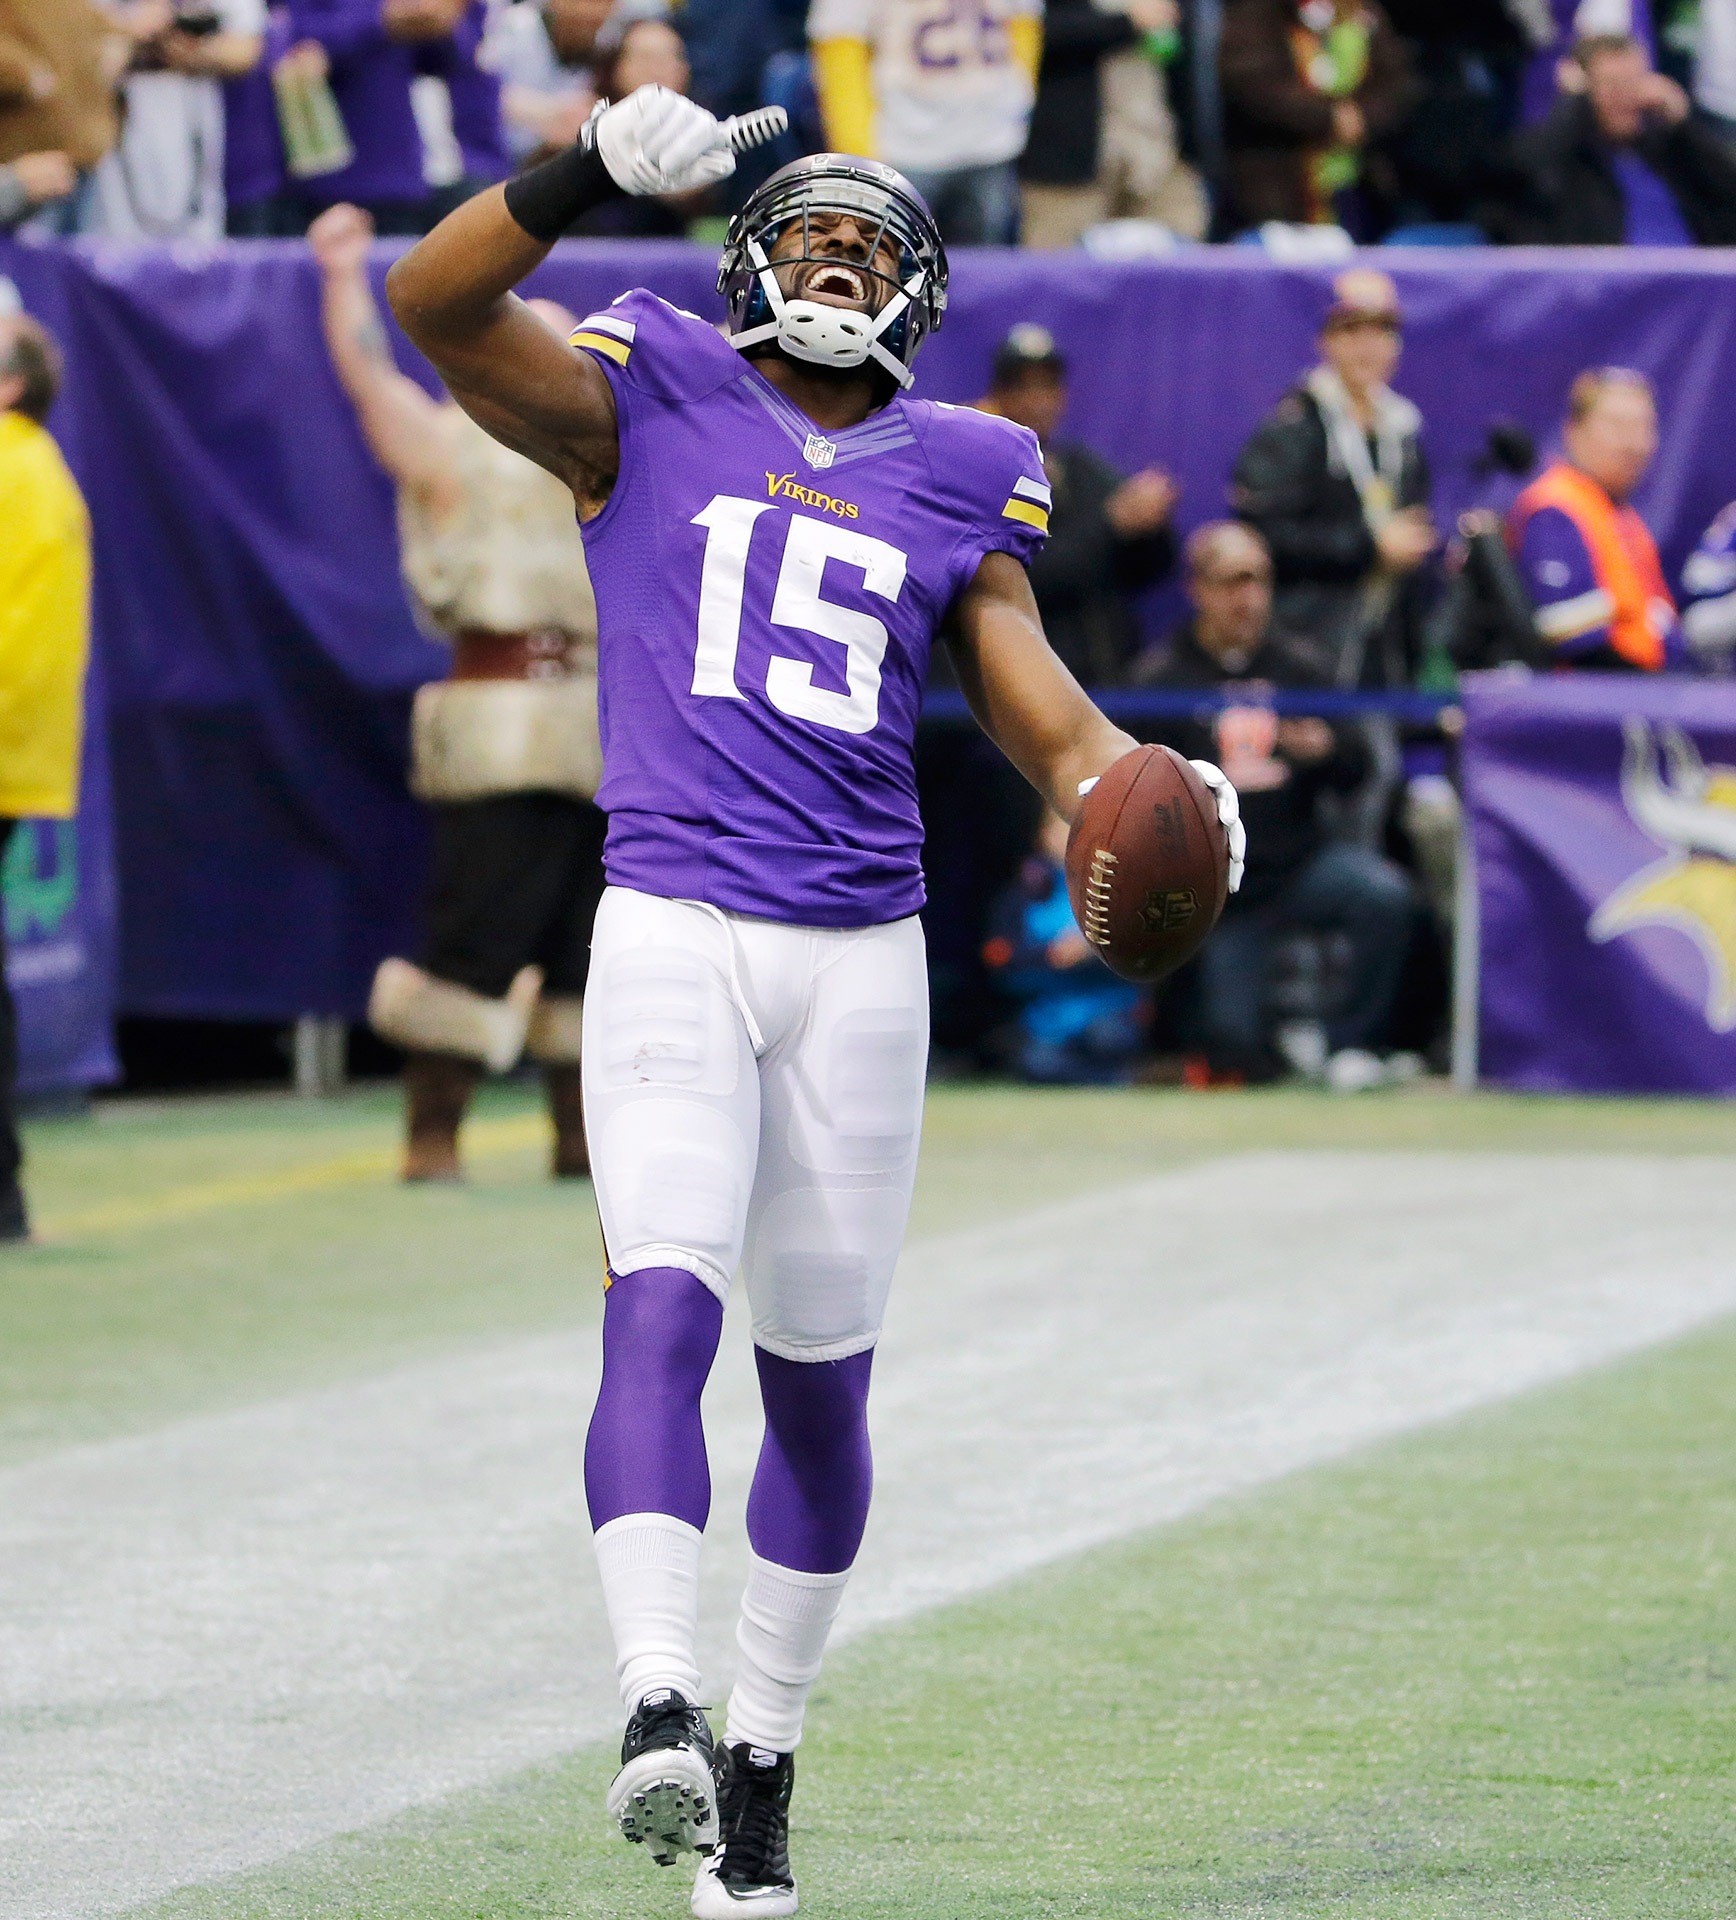 nfl_wk15_vikings_eagles_1736x1920.jpg